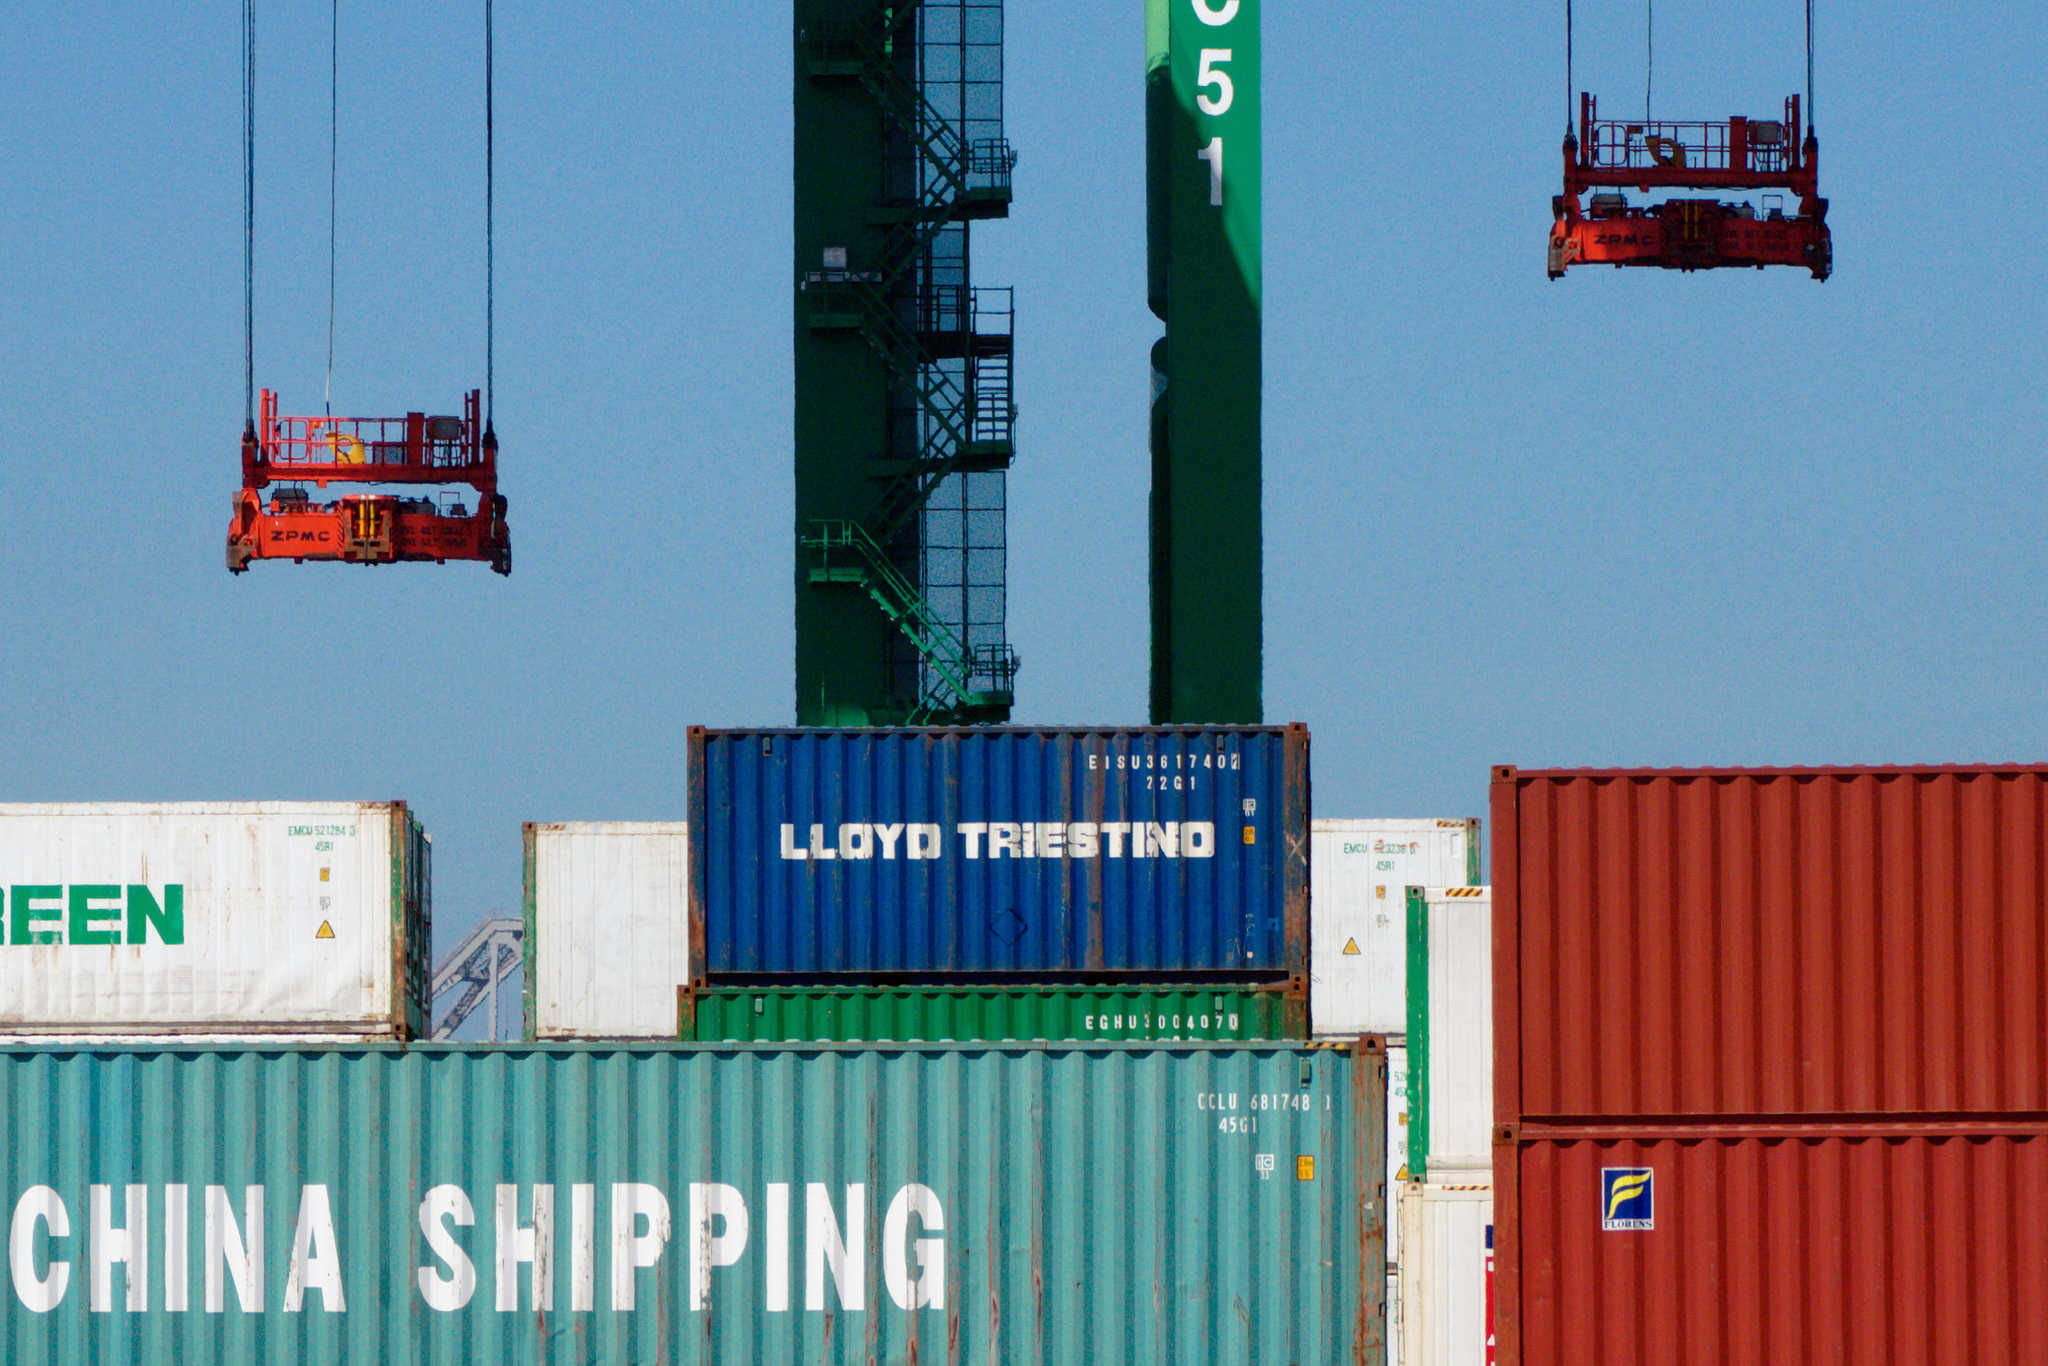 Trans-Pacific Partnership (TPP): What is on the horizon for its members?